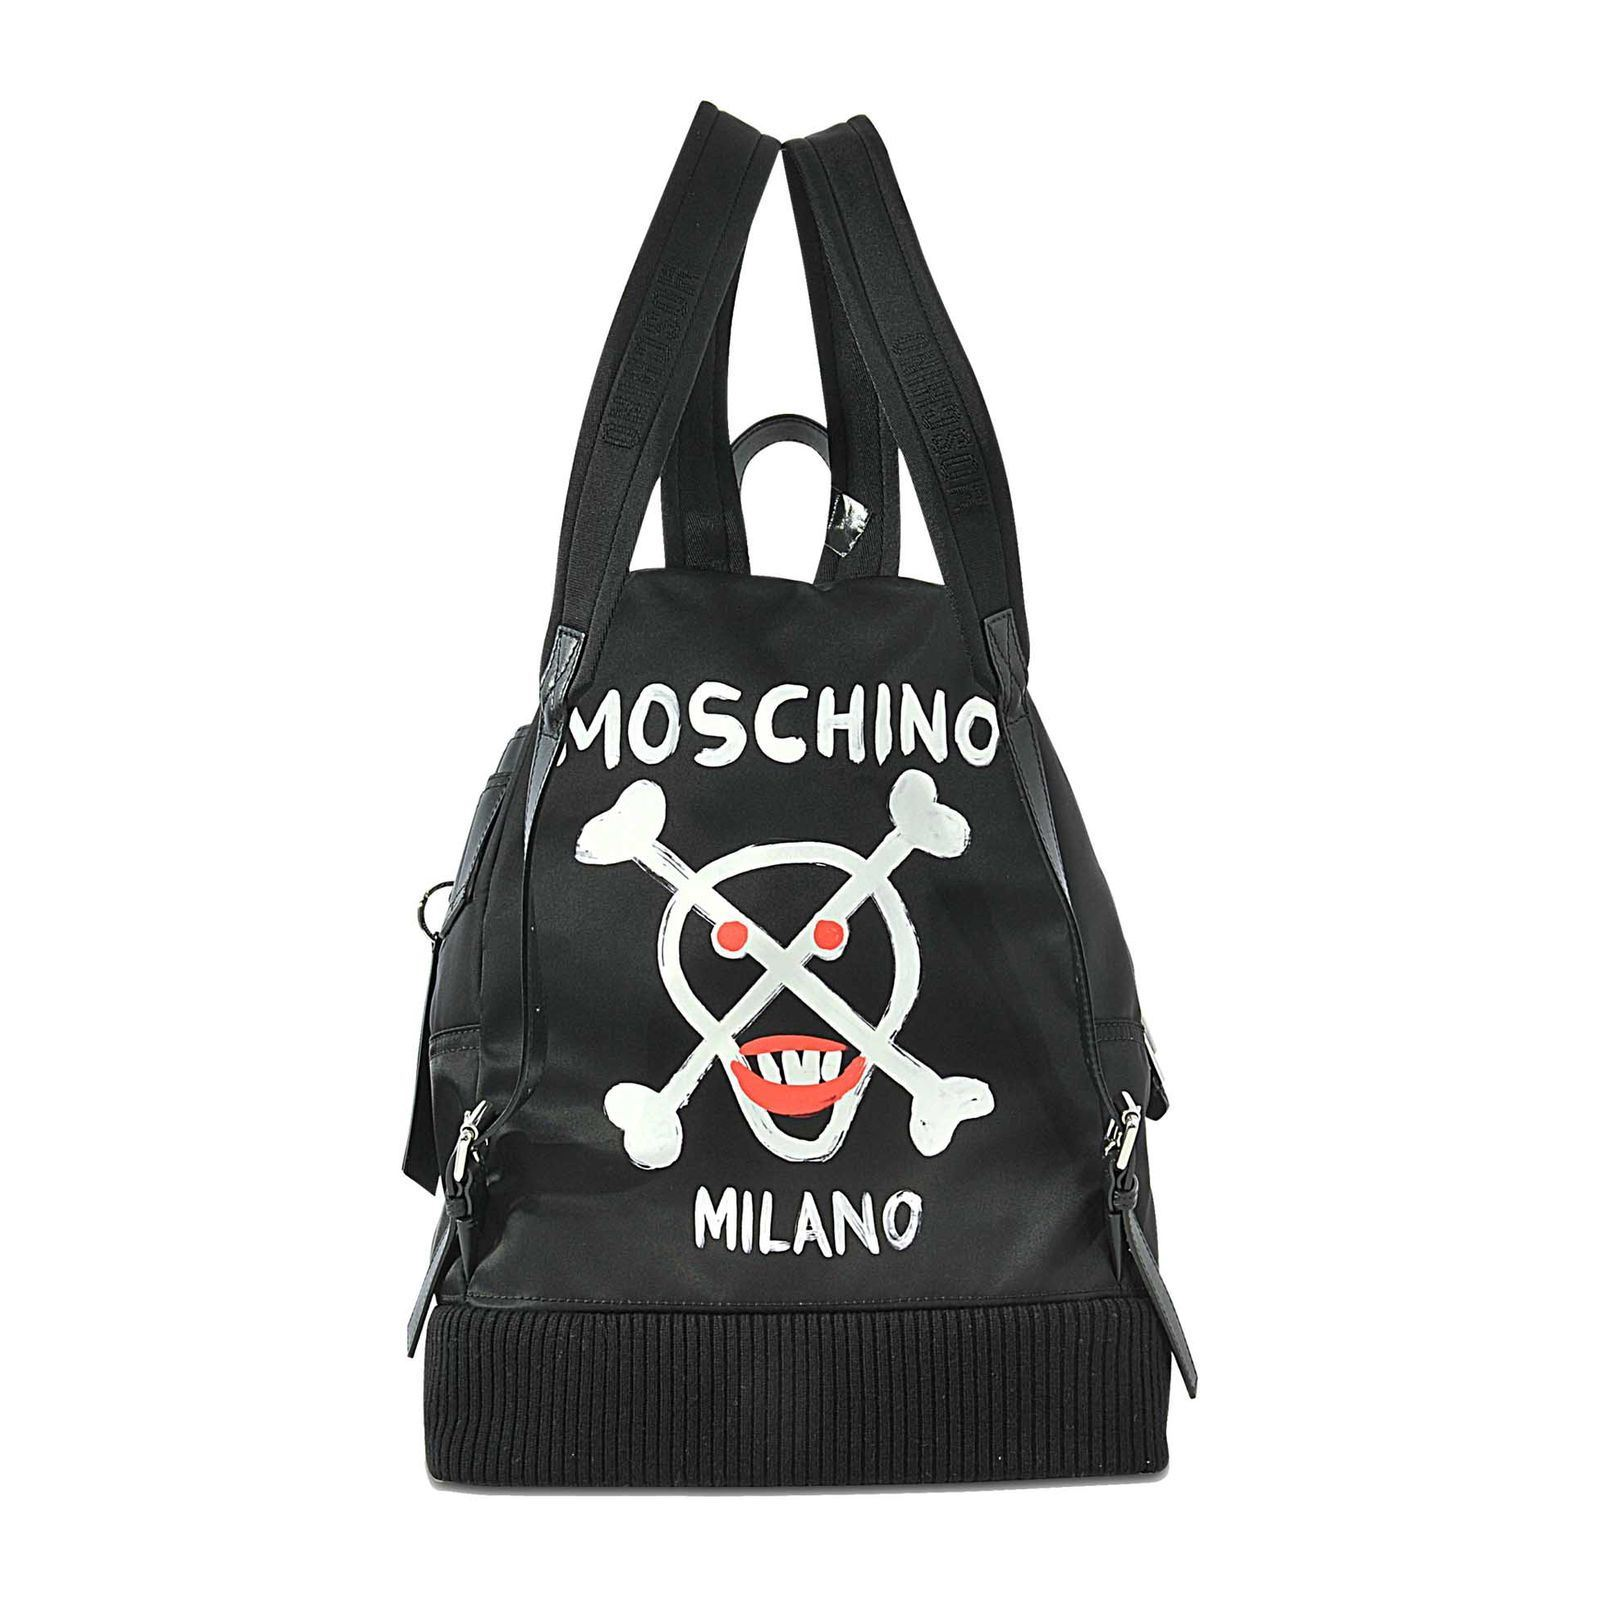 moschino sac dos noir brandalley. Black Bedroom Furniture Sets. Home Design Ideas